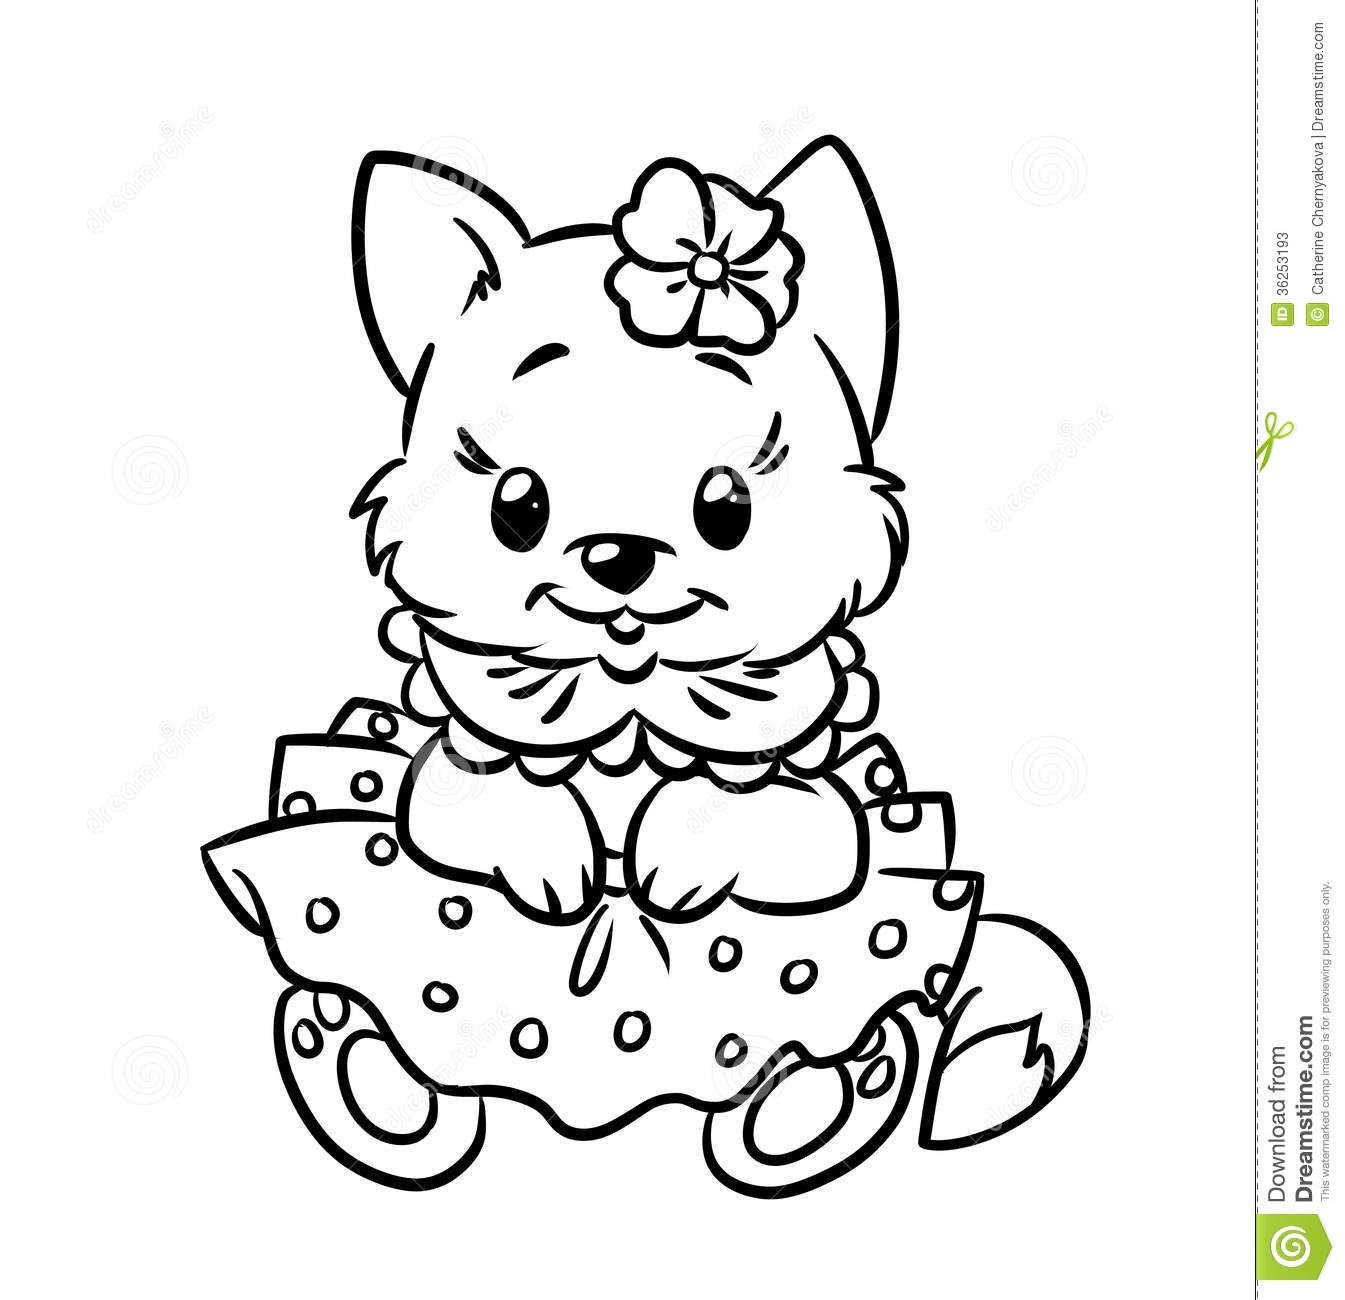 printable cat pictures to color printable cat pictures to color cat printable color to pictures